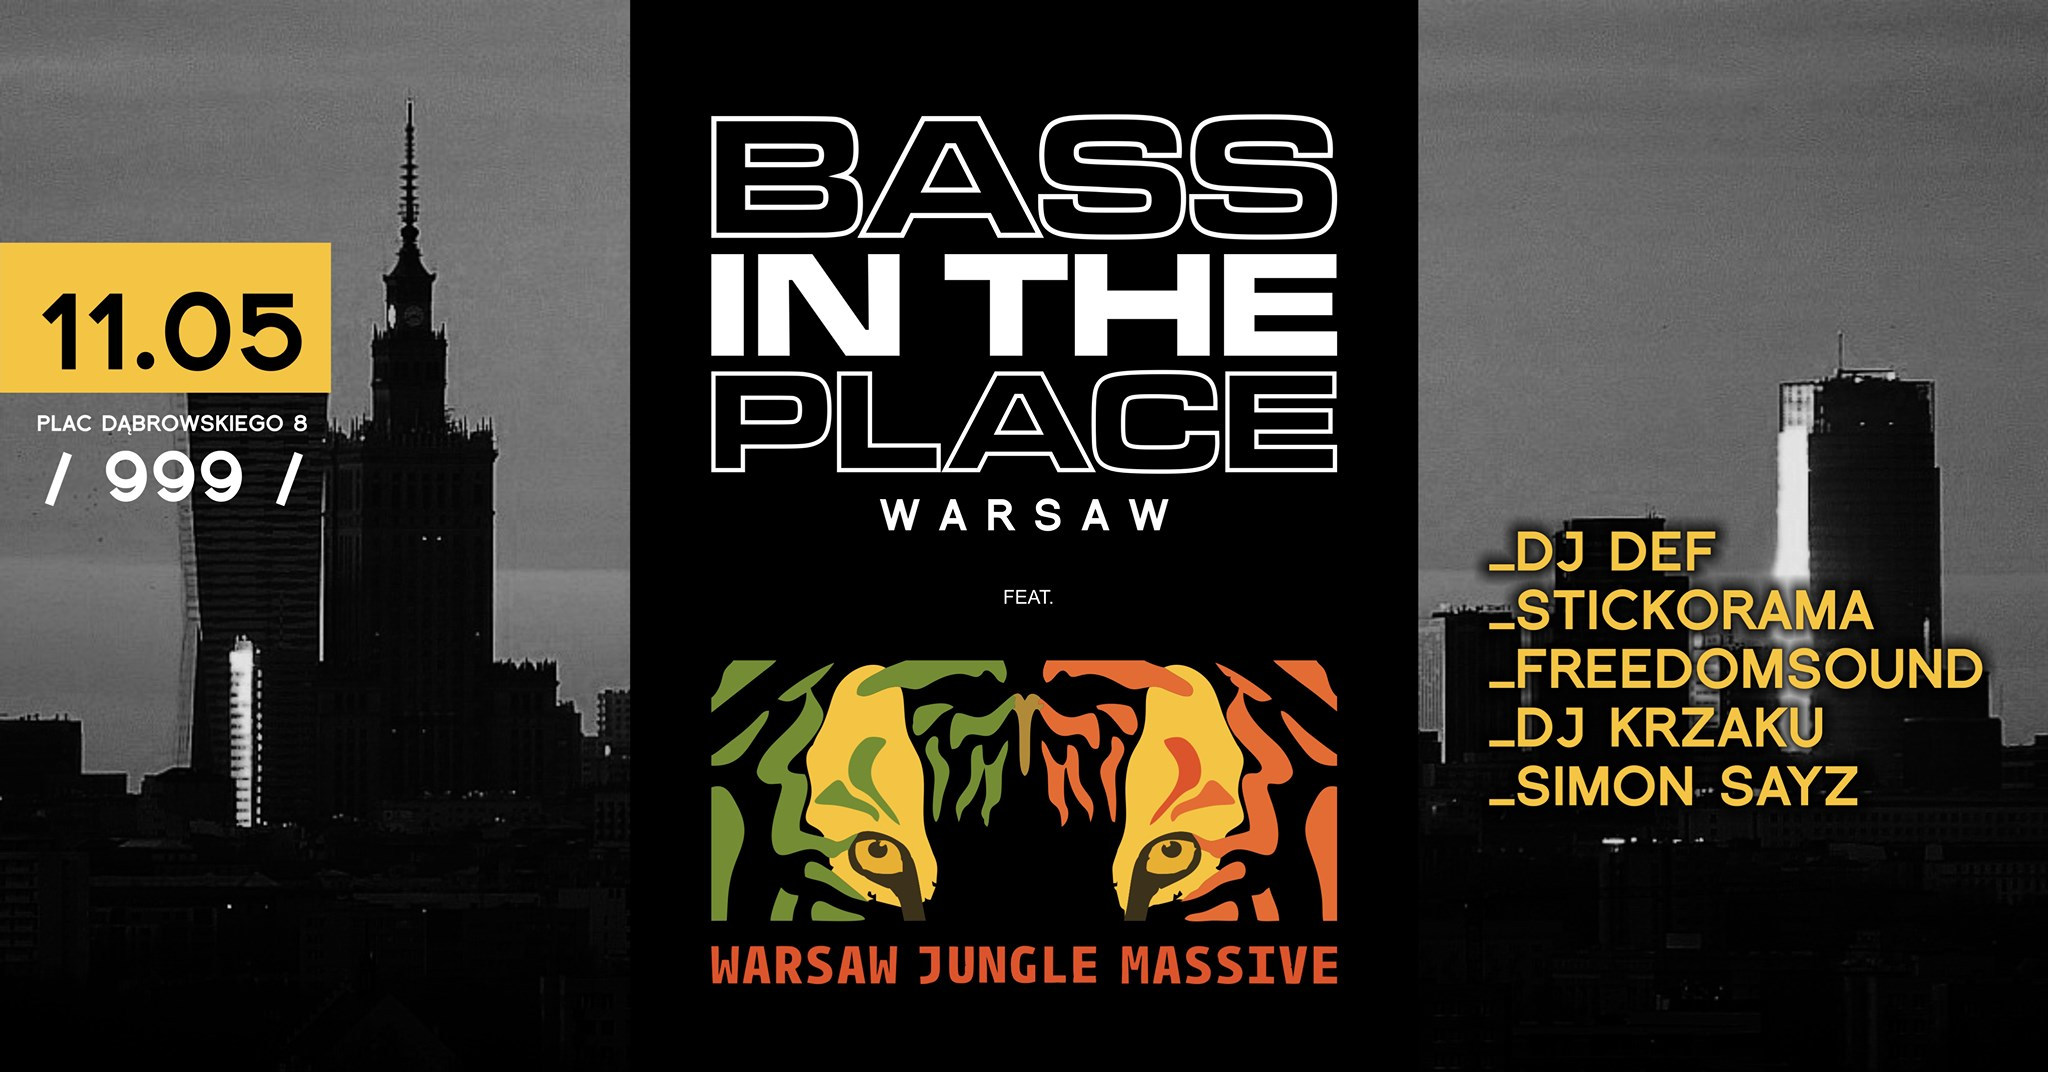 999: Bass In The Place. Warsaw feat. Warsaw Jungle Massive